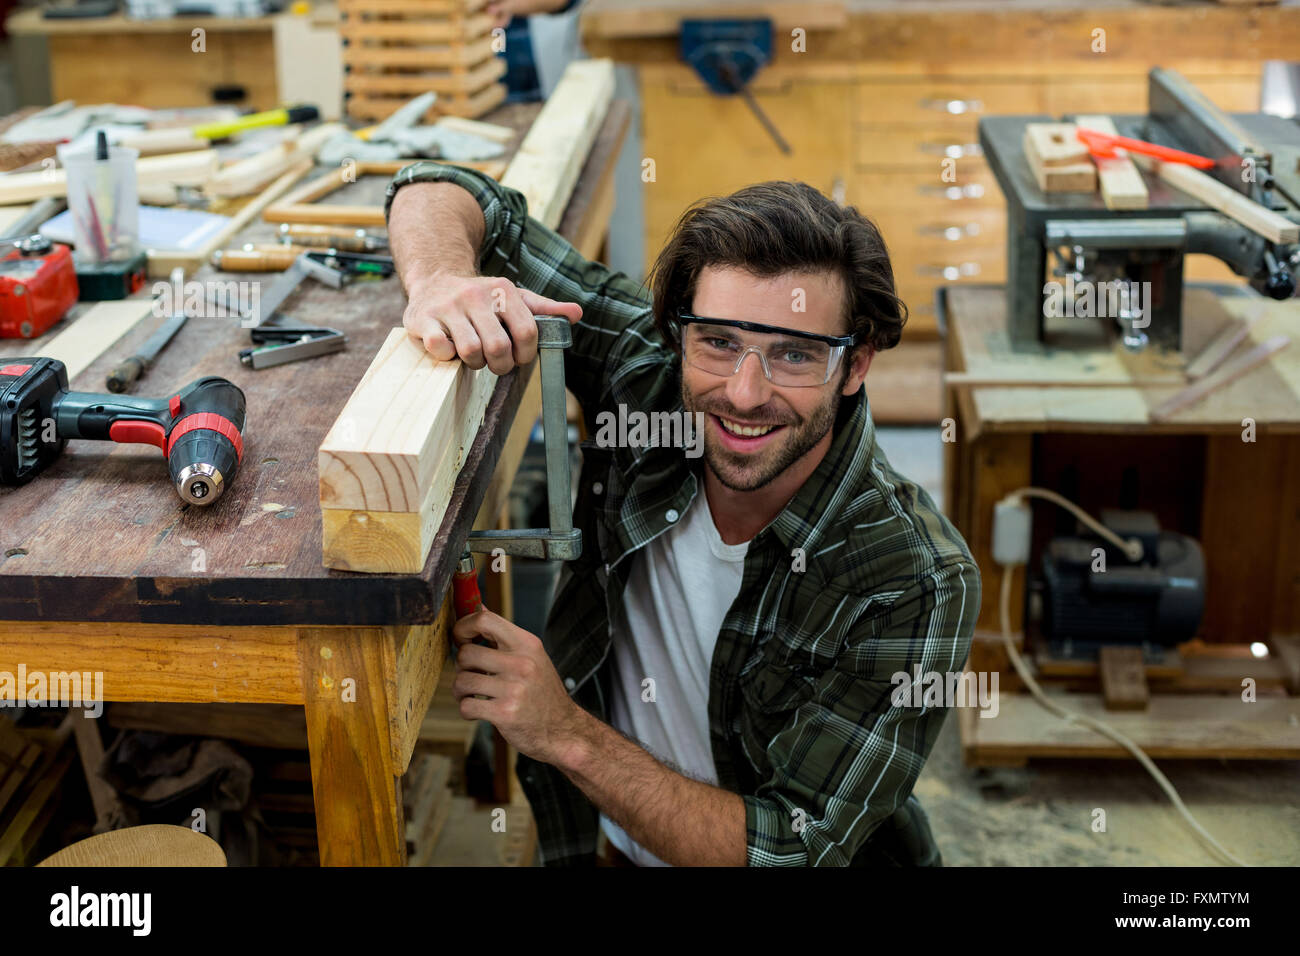 Portrait of male carpenter clamping wood - Stock Image